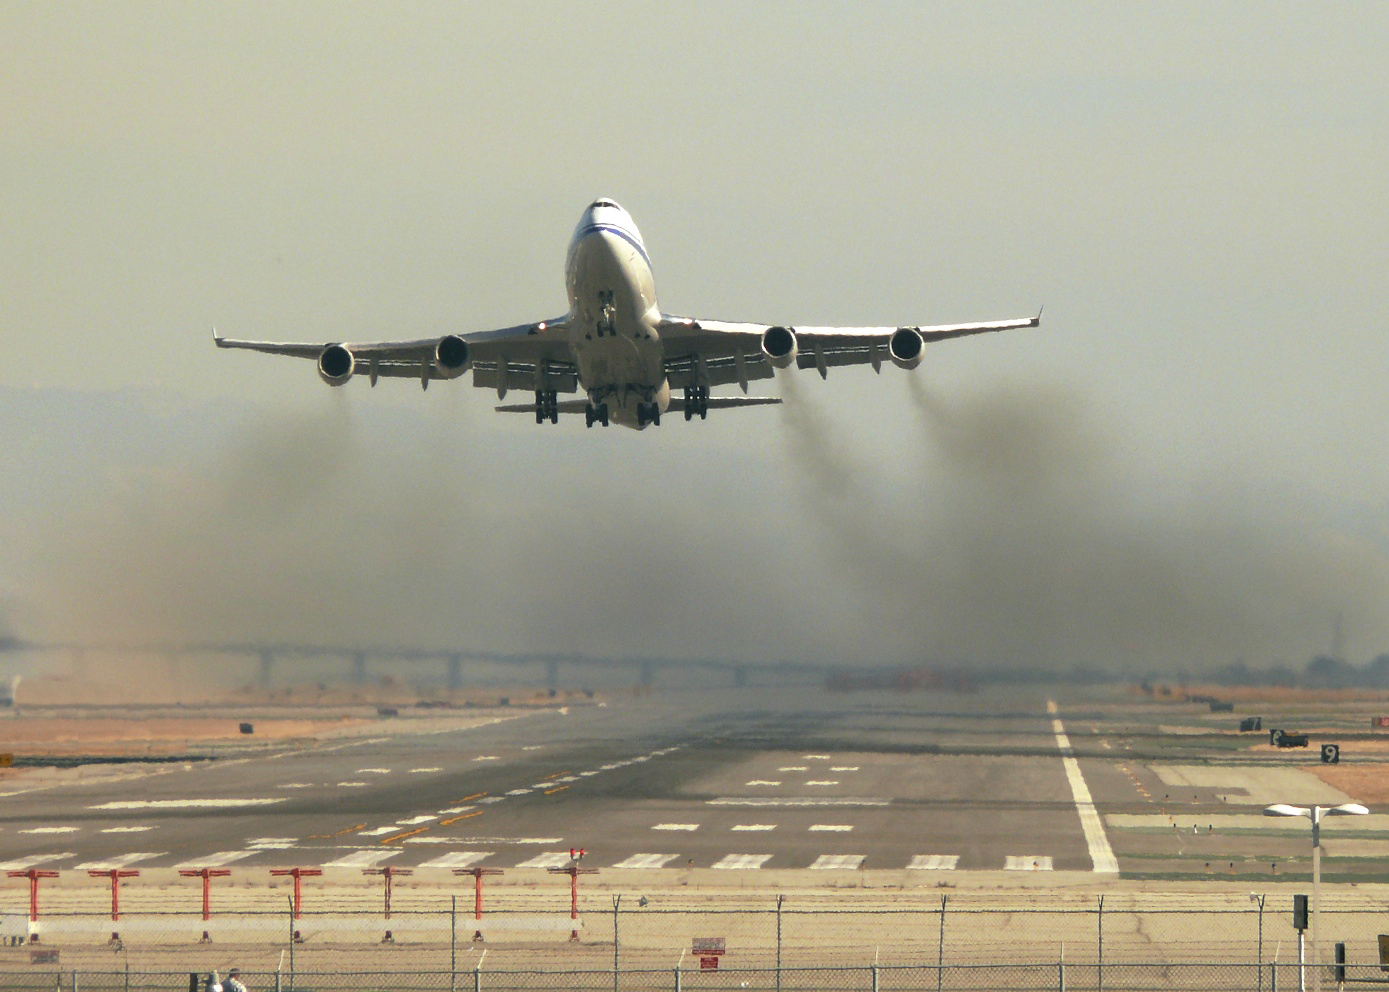 A Boeing 747 takes off from San Francisco International Airport (Photo copyright ©dsleeter_2000 via Flickr Creative Commons).